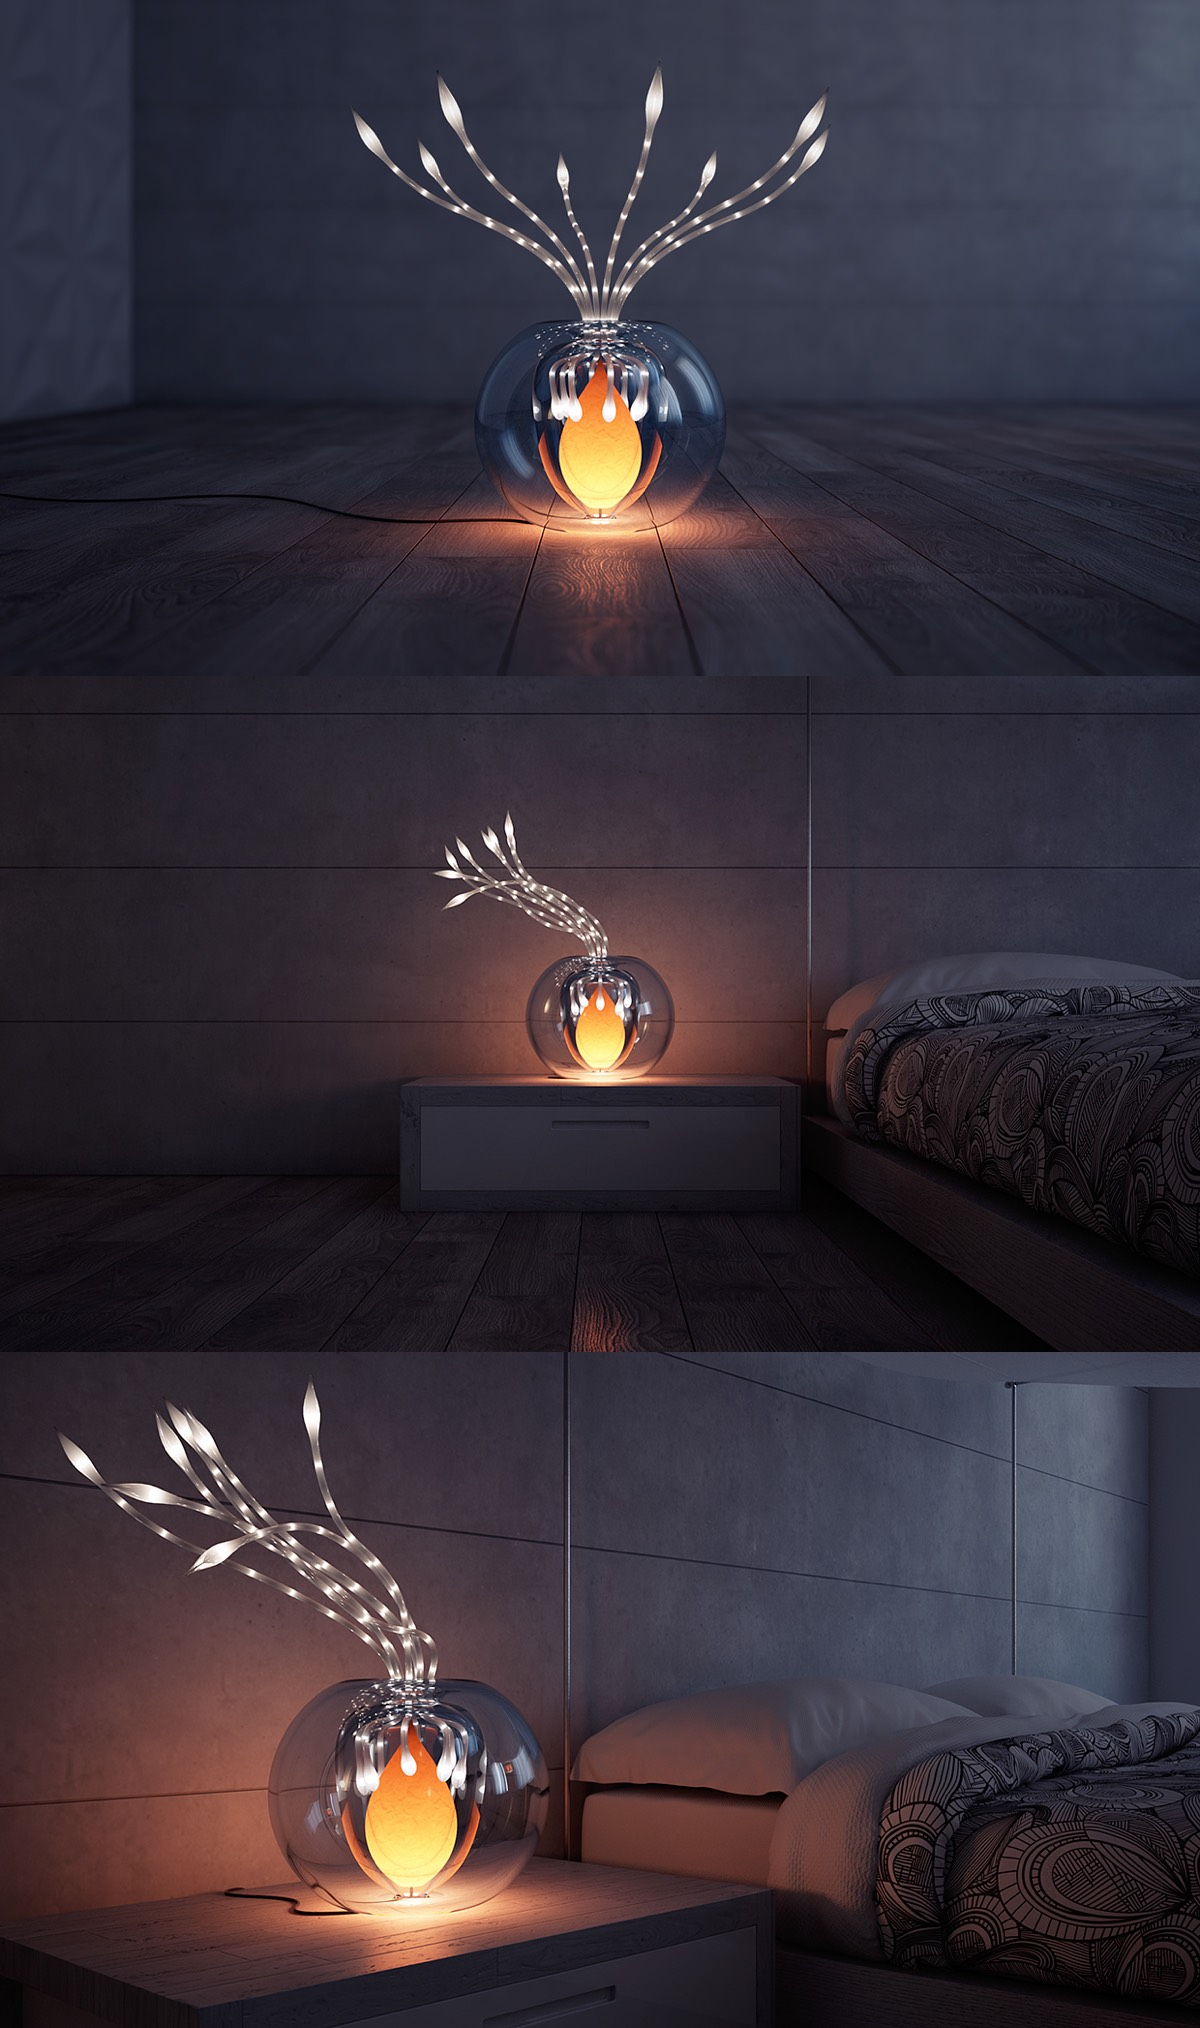 Plant Lamp - A set of extraordinary lights